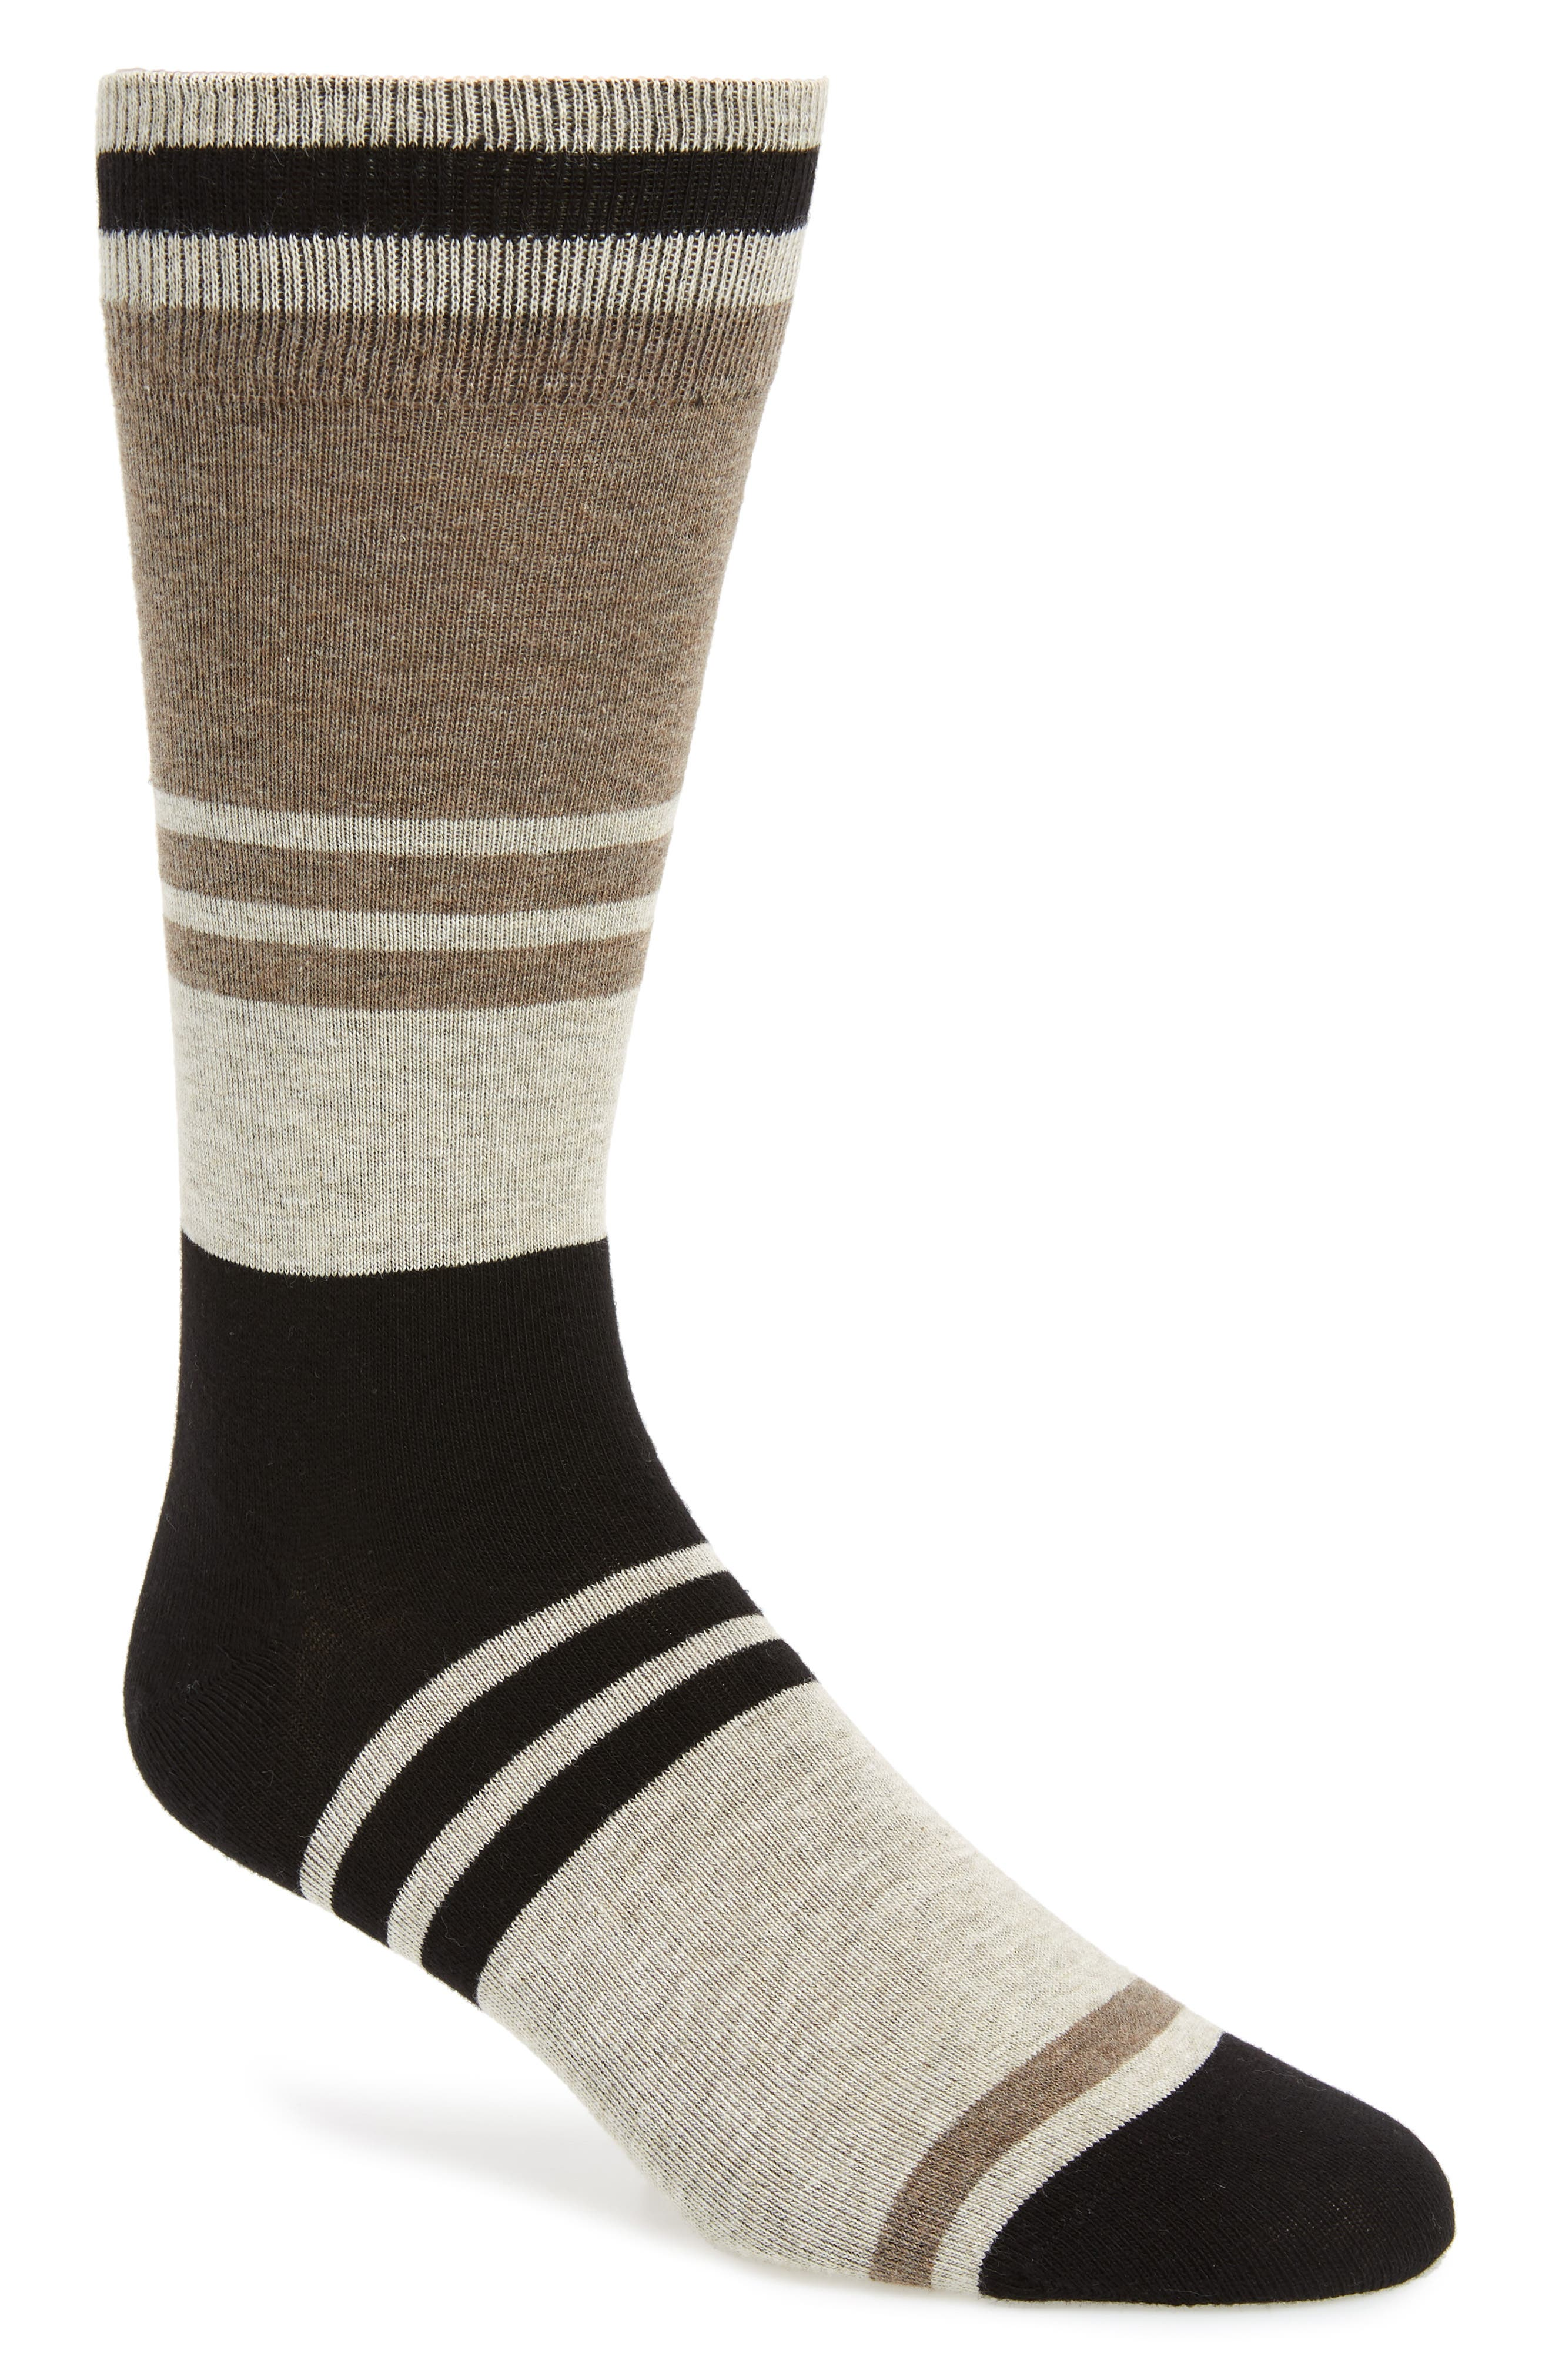 Collegiate Colorblock Socks,                         Main,                         color, KHAKI